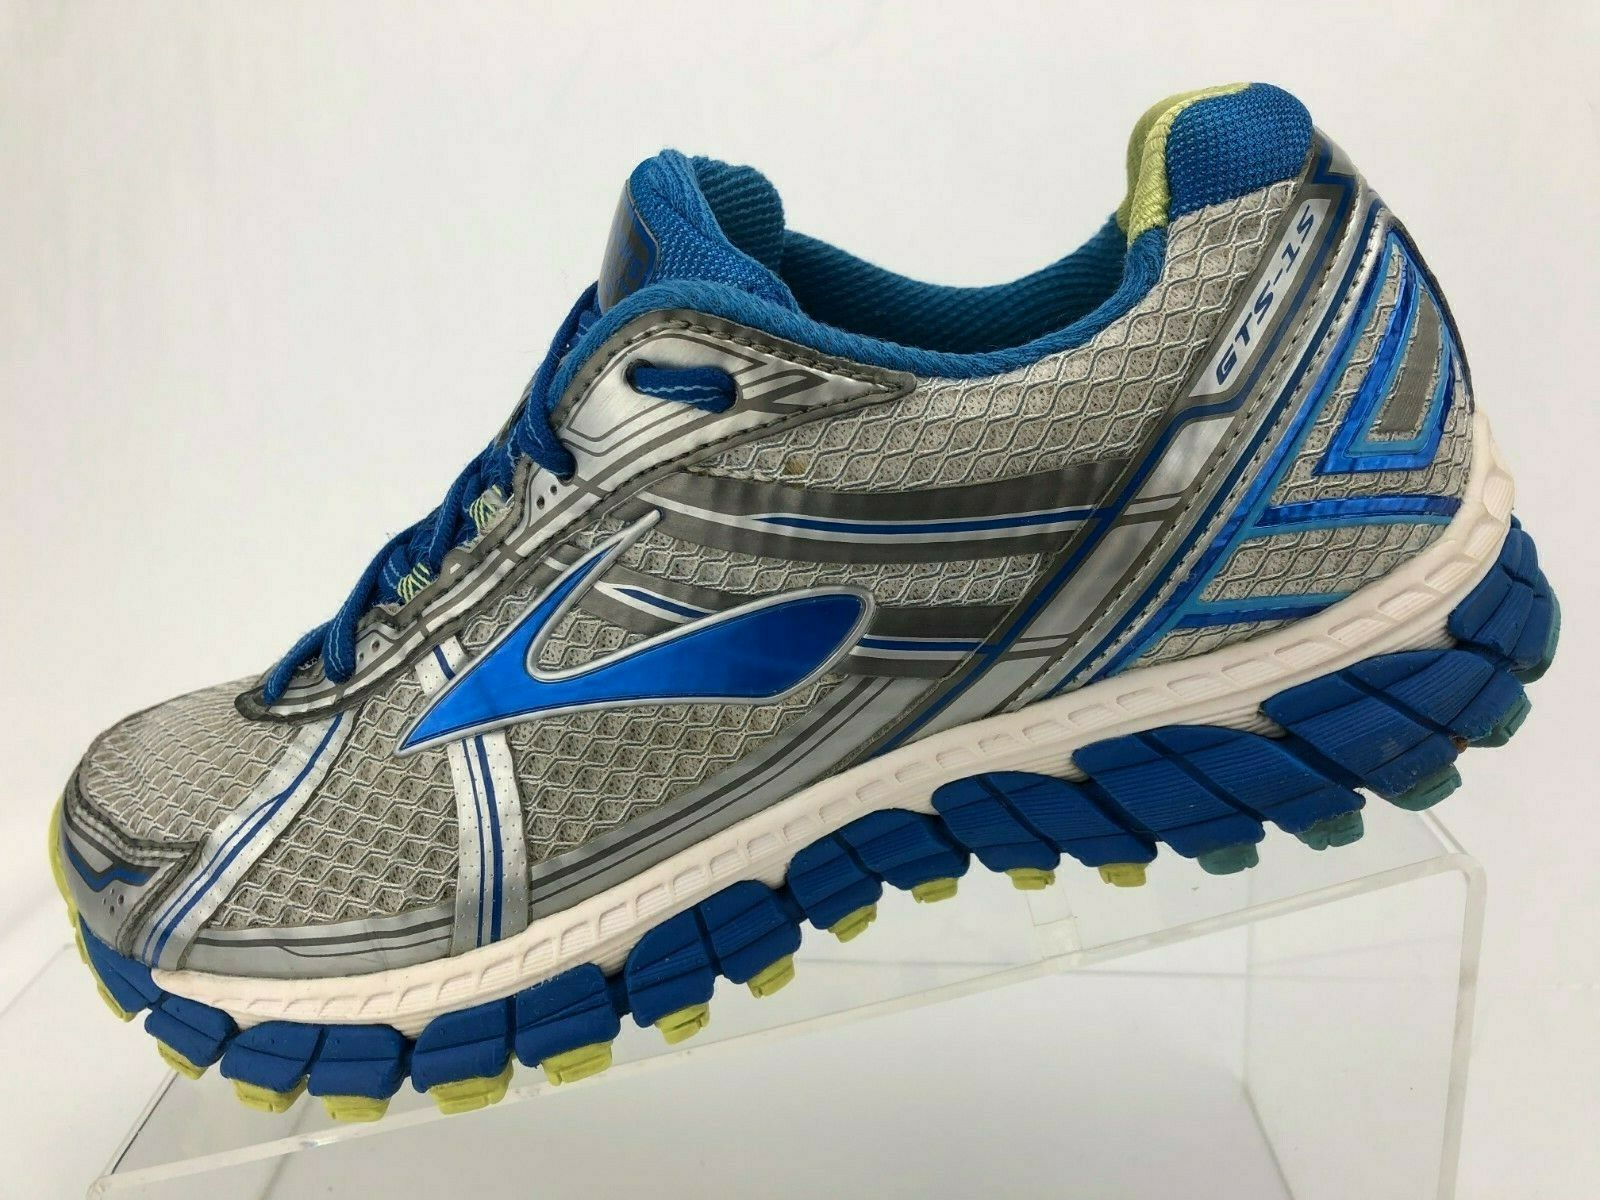 Brooks Adrenaline GTS 15 15 15 Running shoes bluee Grey Training Sneakers Womens 9 B c2194e